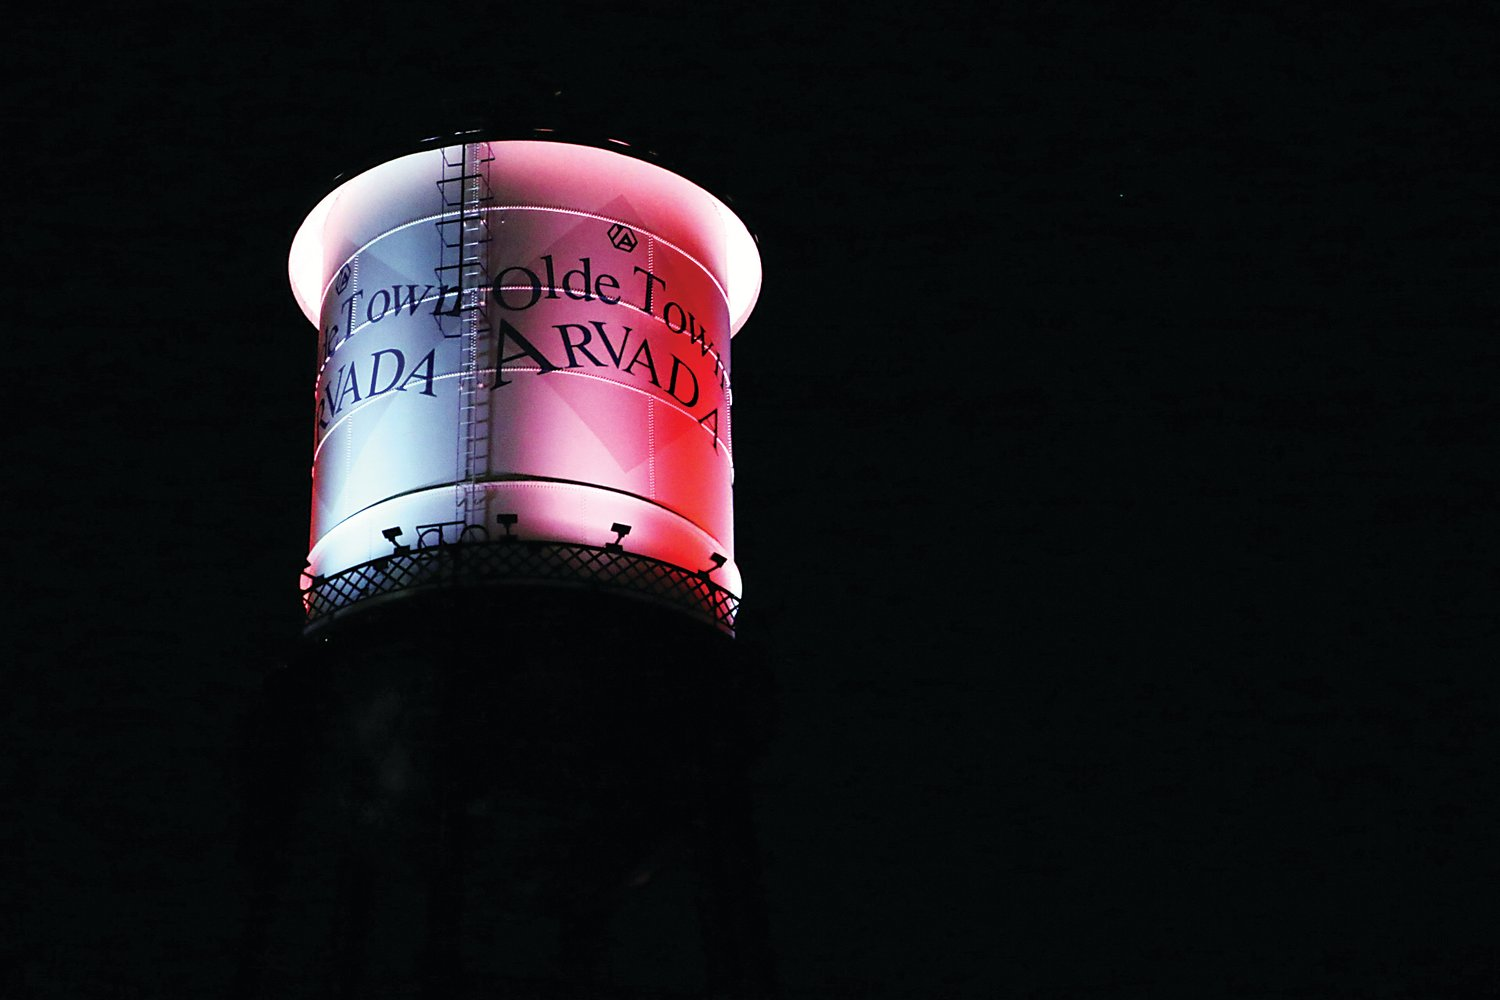 Olde Town Arvada water tower lit up in Pomona High School's colors.